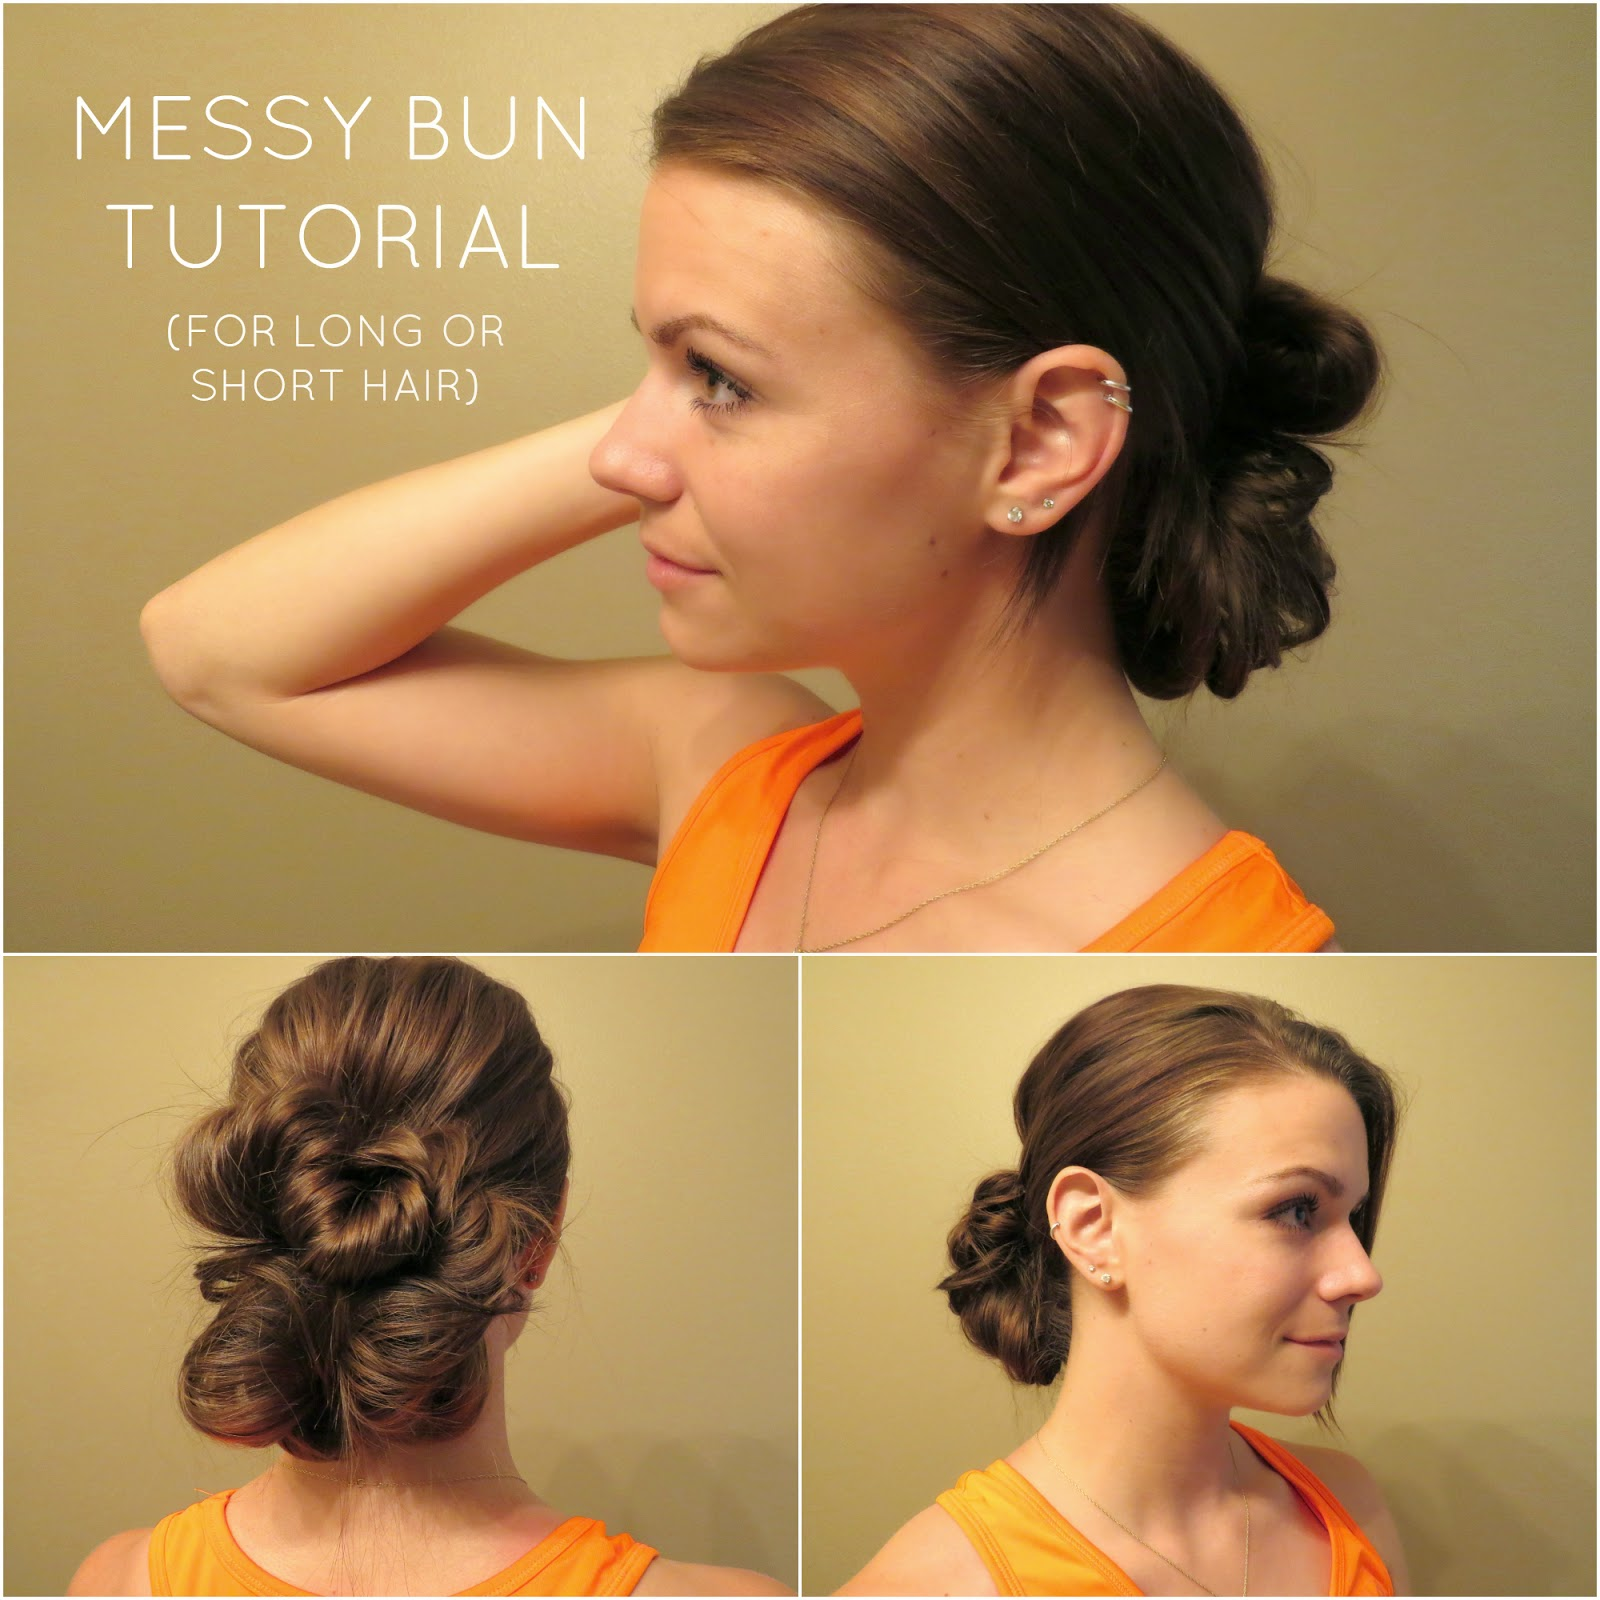 bye bye beehive │ a hairstyle blog: messy bun tutorial for